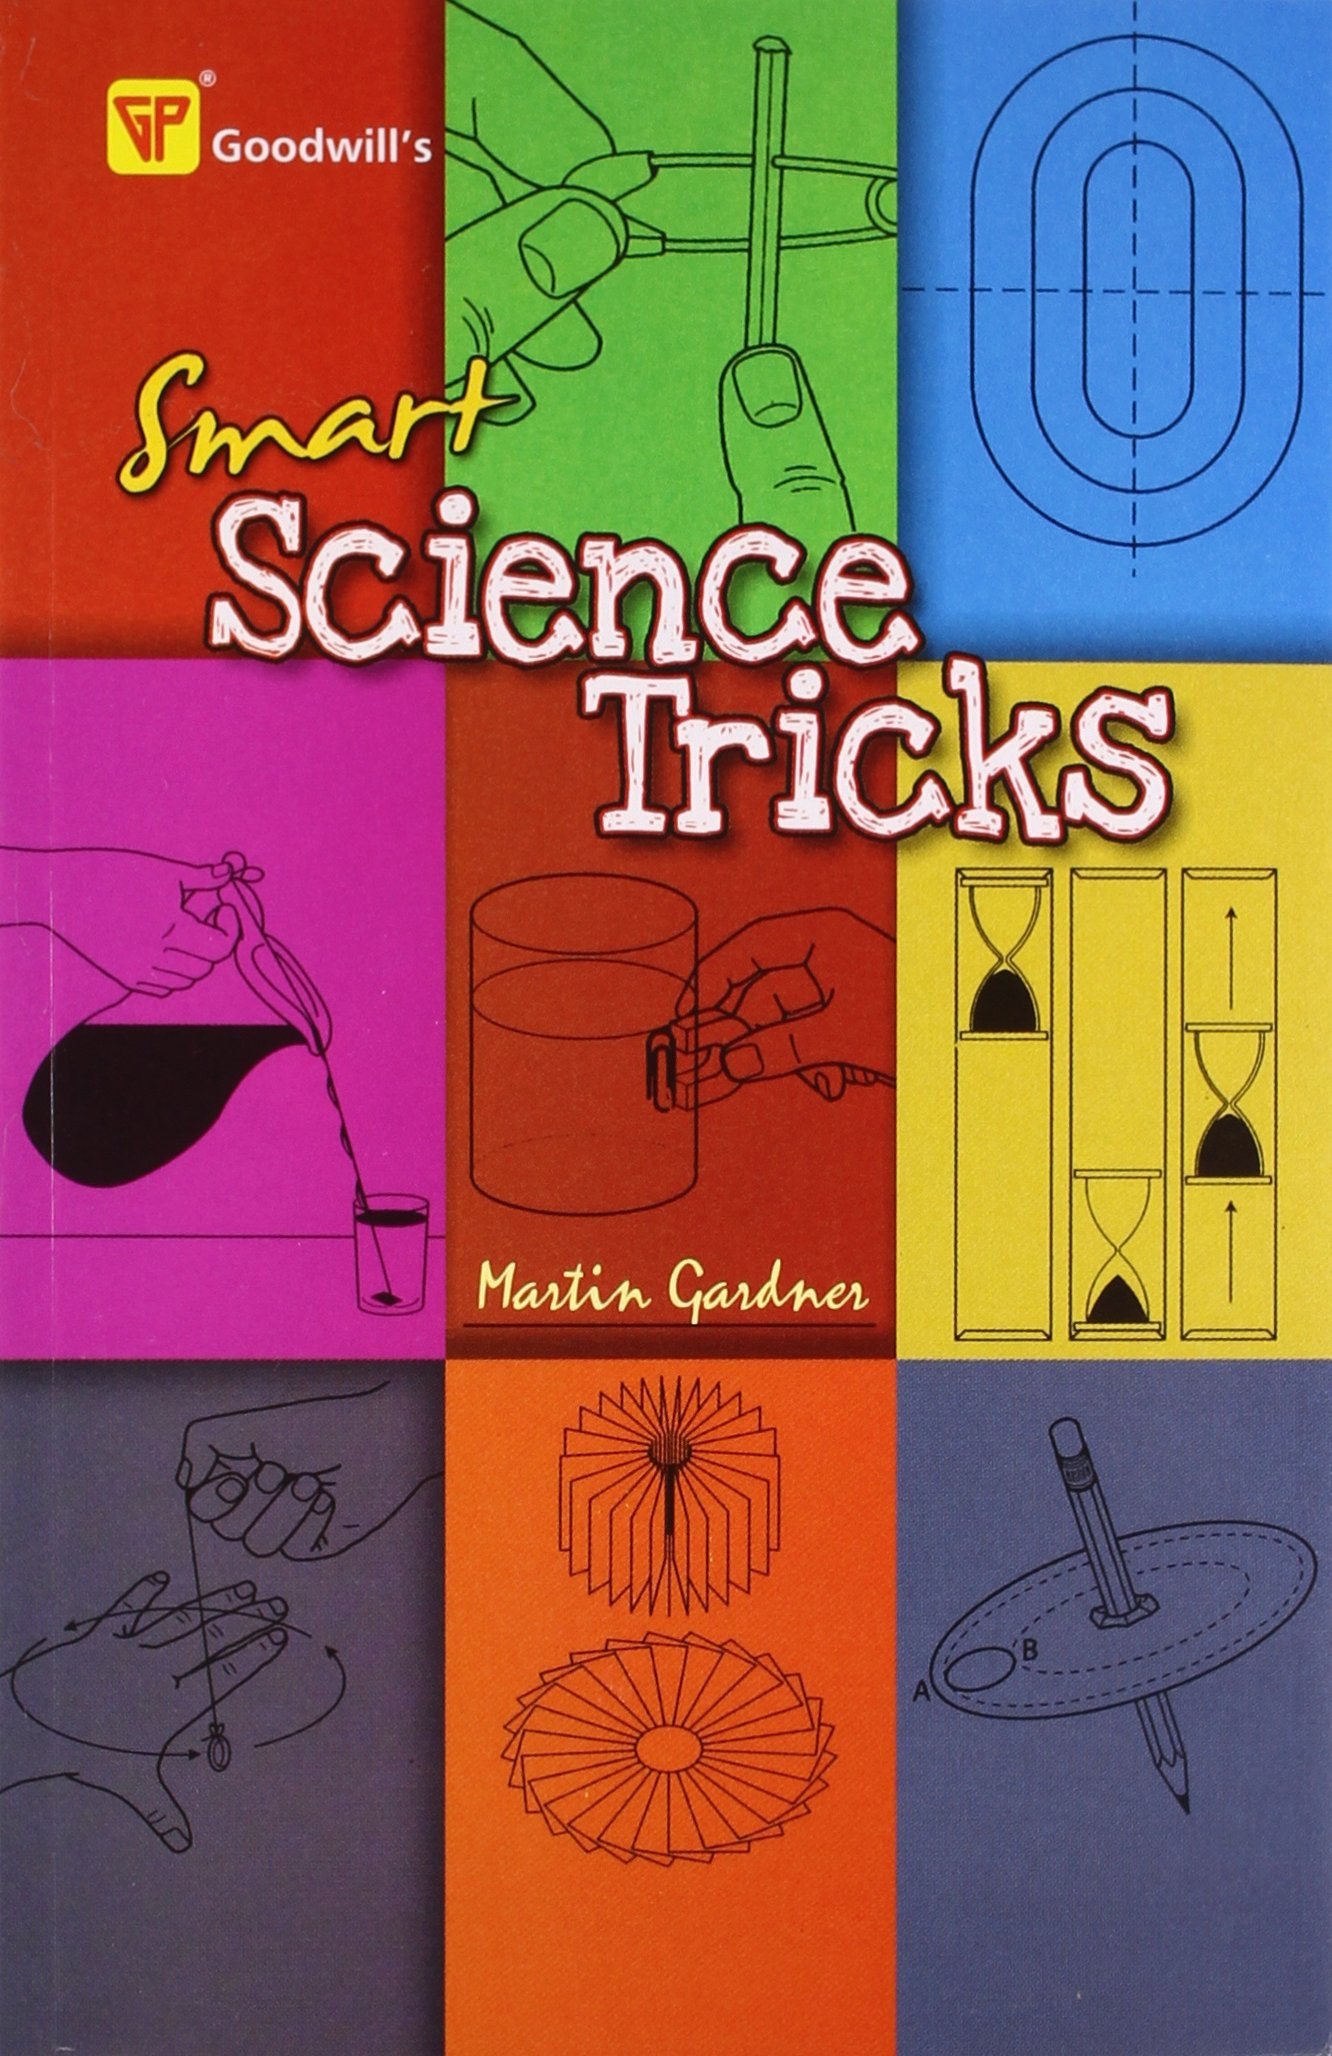 Martin gardner books related products dvd cd apparel smart science tricks fandeluxe Image collections